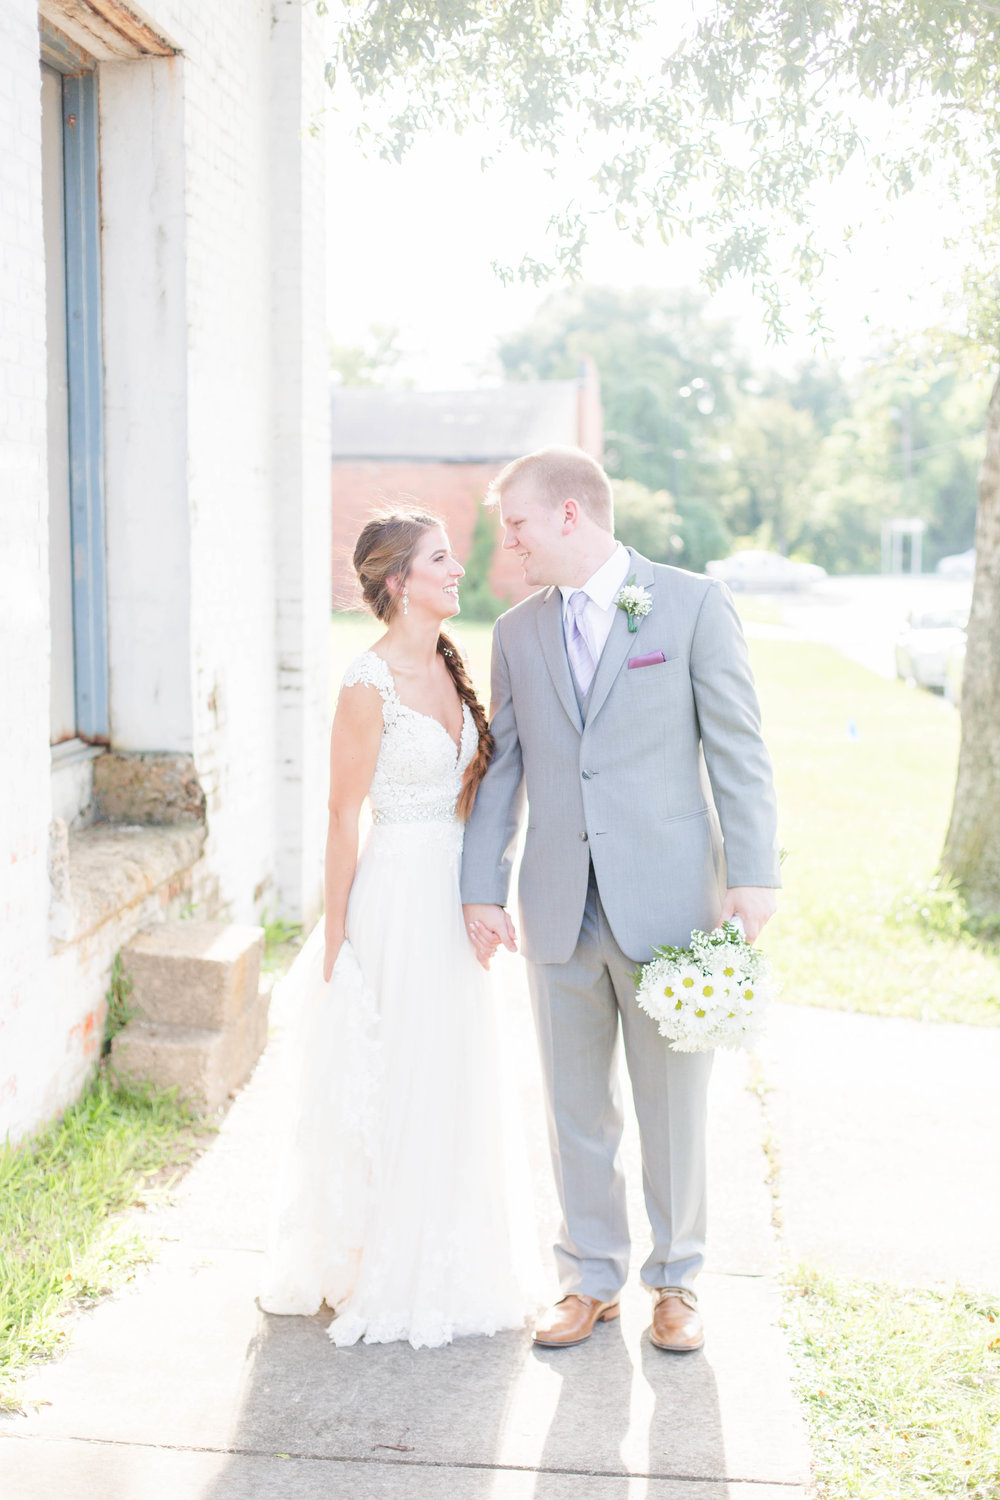 Featured: Sam & Brooke